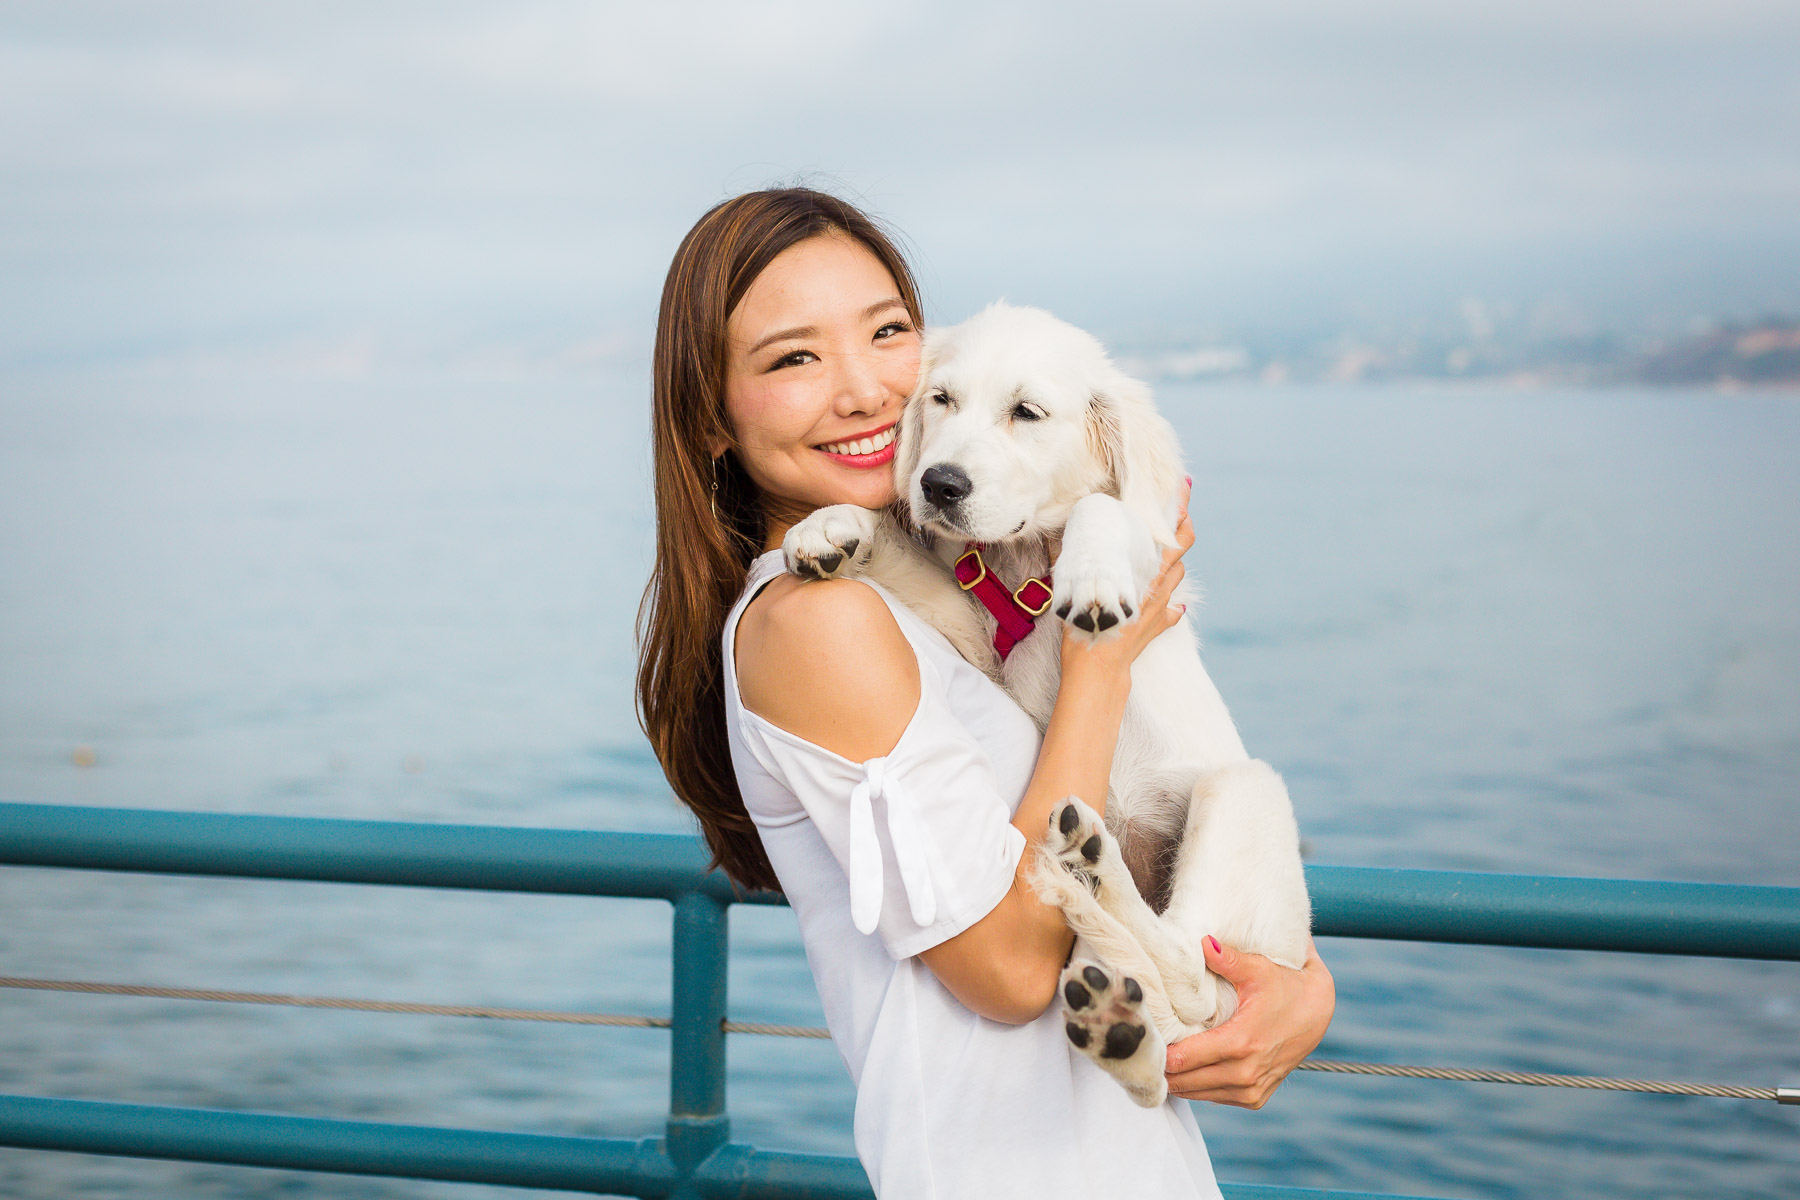 asian-girl-holding-cream-golder-retriever-puppy-beach.jpg